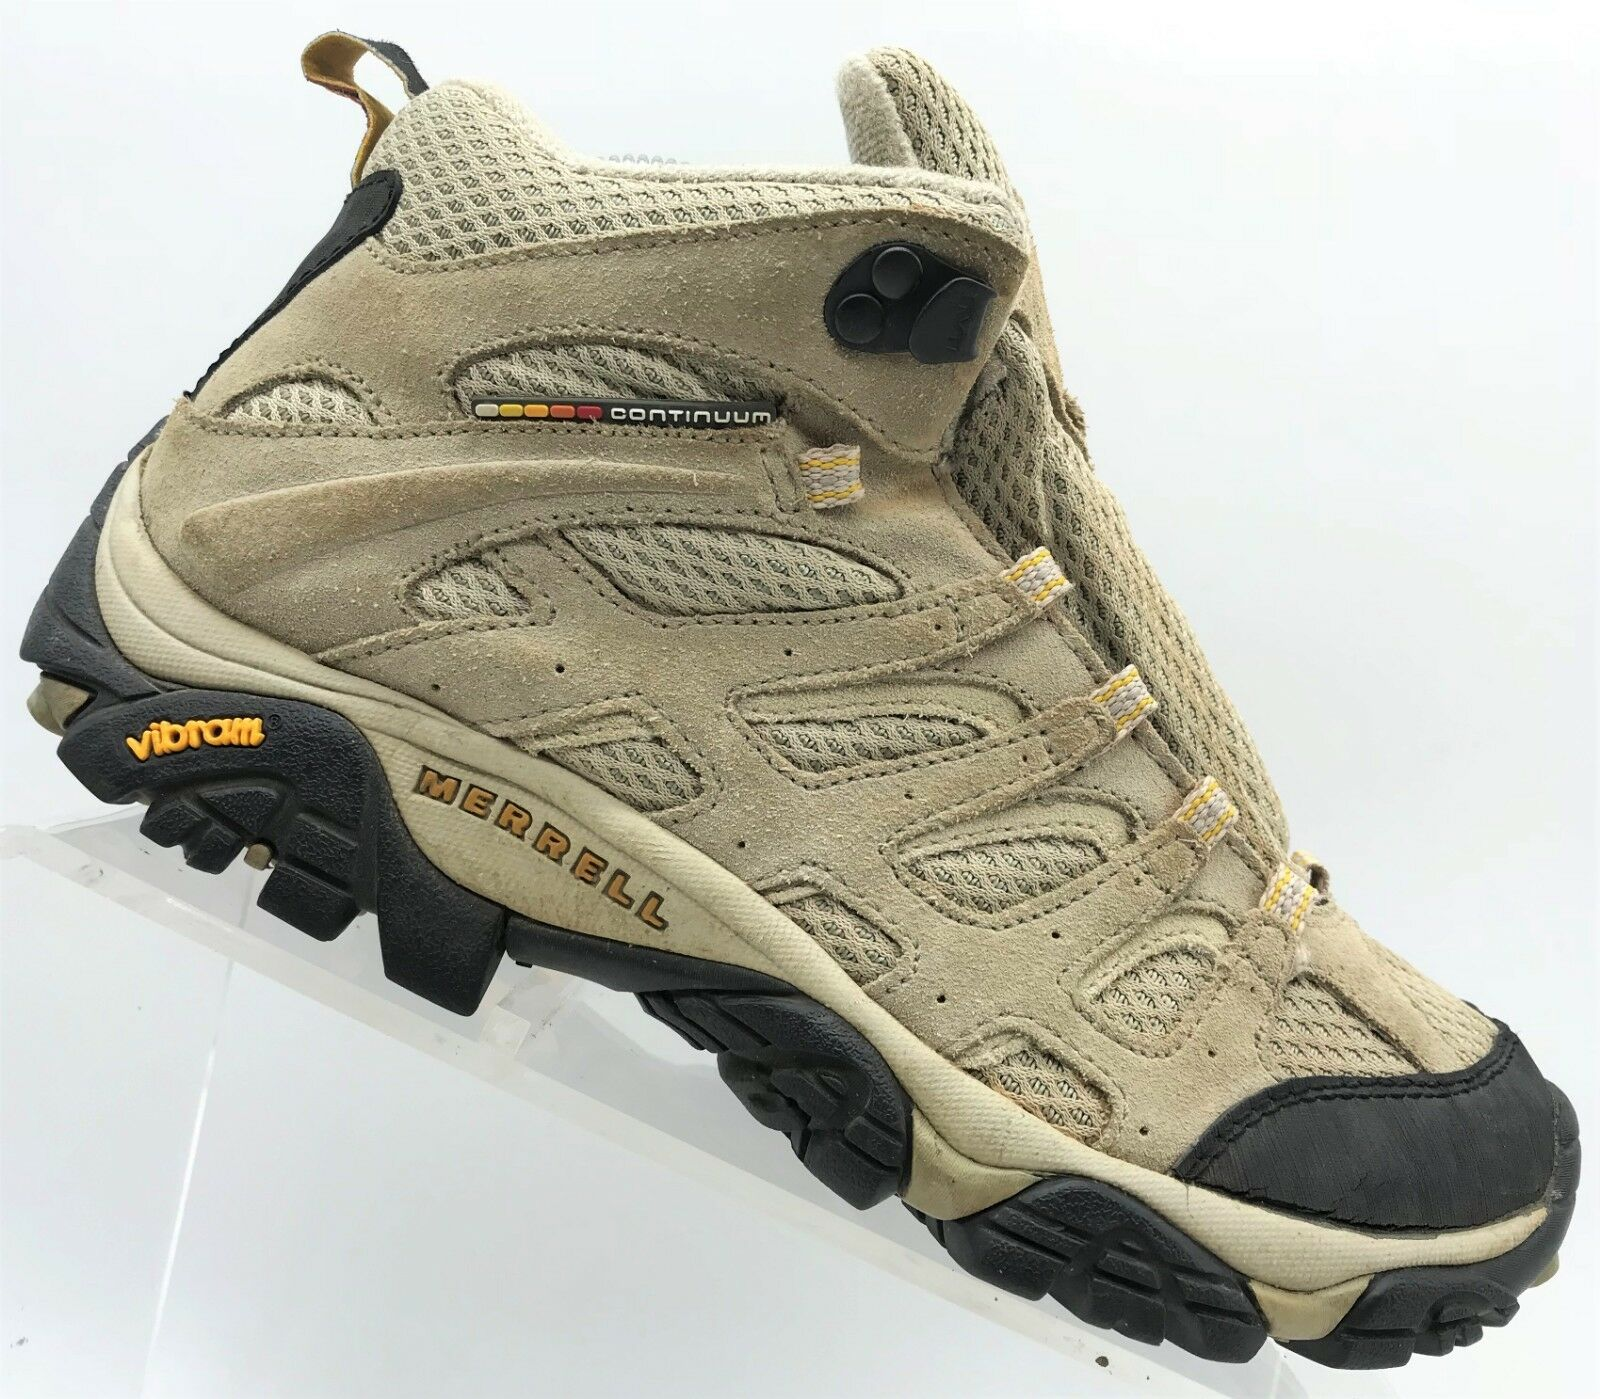 Merrell MOAB Ventilator Taupe Suede Lace Up Hiking Boots Women's 7.5